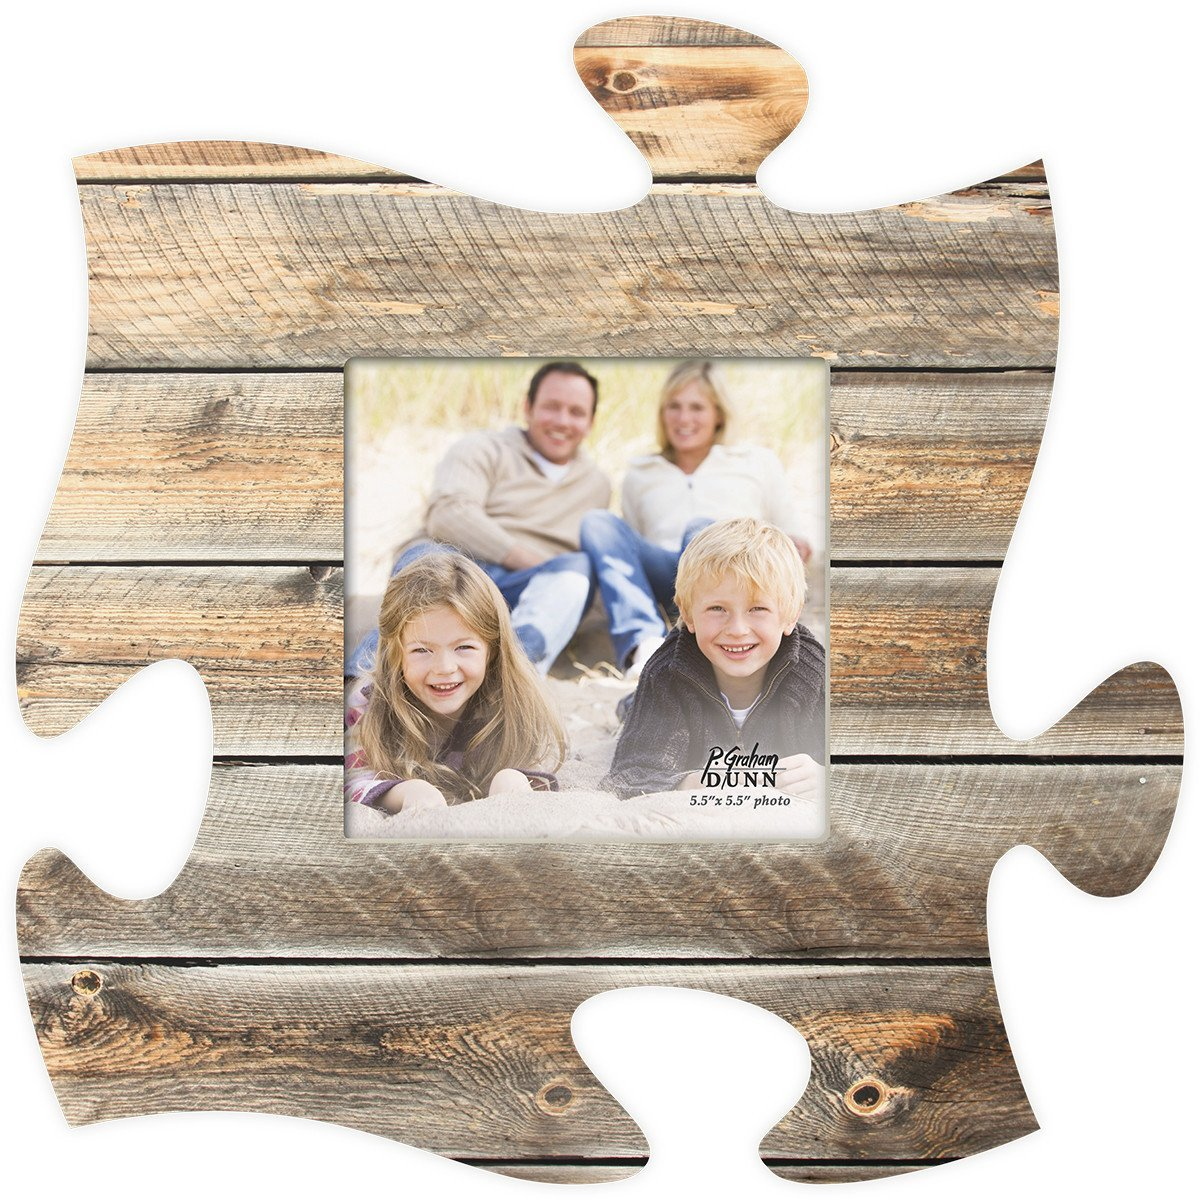 Puzzle Photo Frame Natural Wood Puzzle picture frame